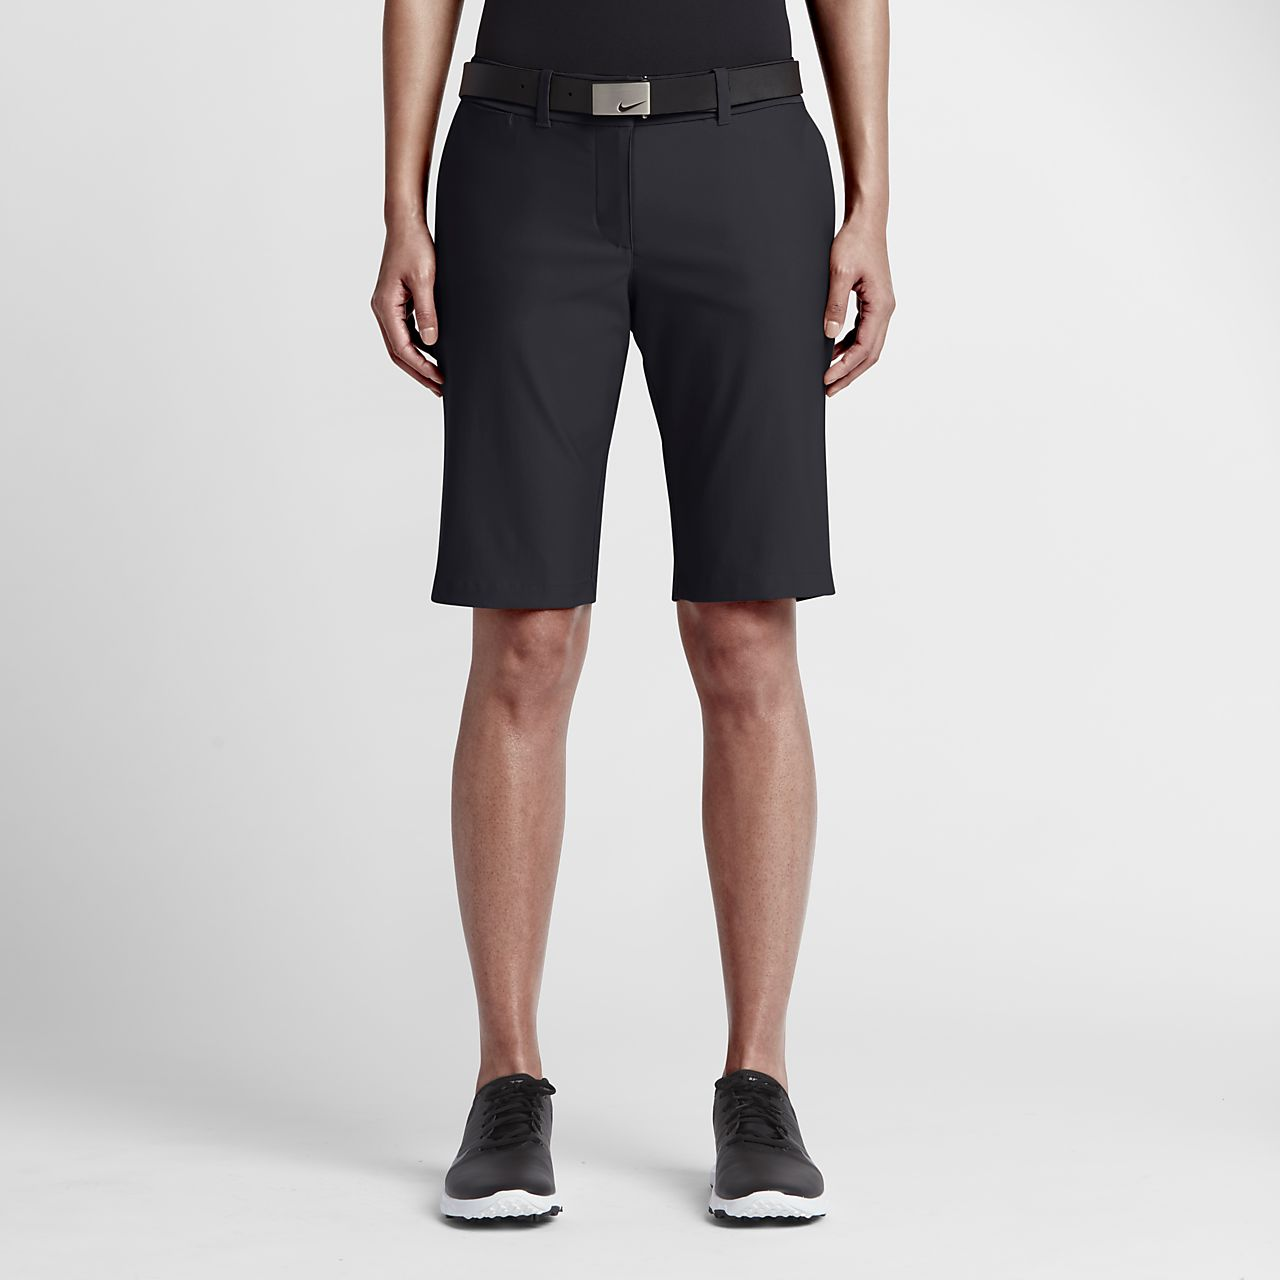 Golf Shorts Nike Dry Women's 11\